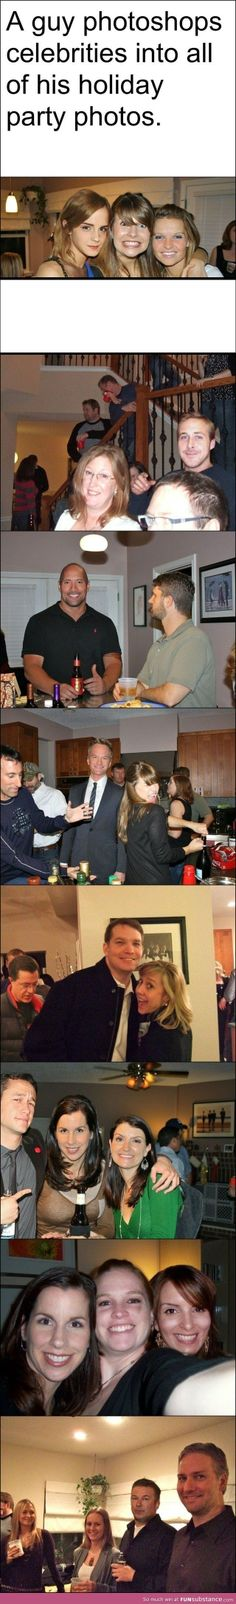 """That's how it's done. I can spot Emma Watson, Ryan Gosling, Dwayne """"the rock"""" Johnson, Tina Fey.. these are hilarious XD"""